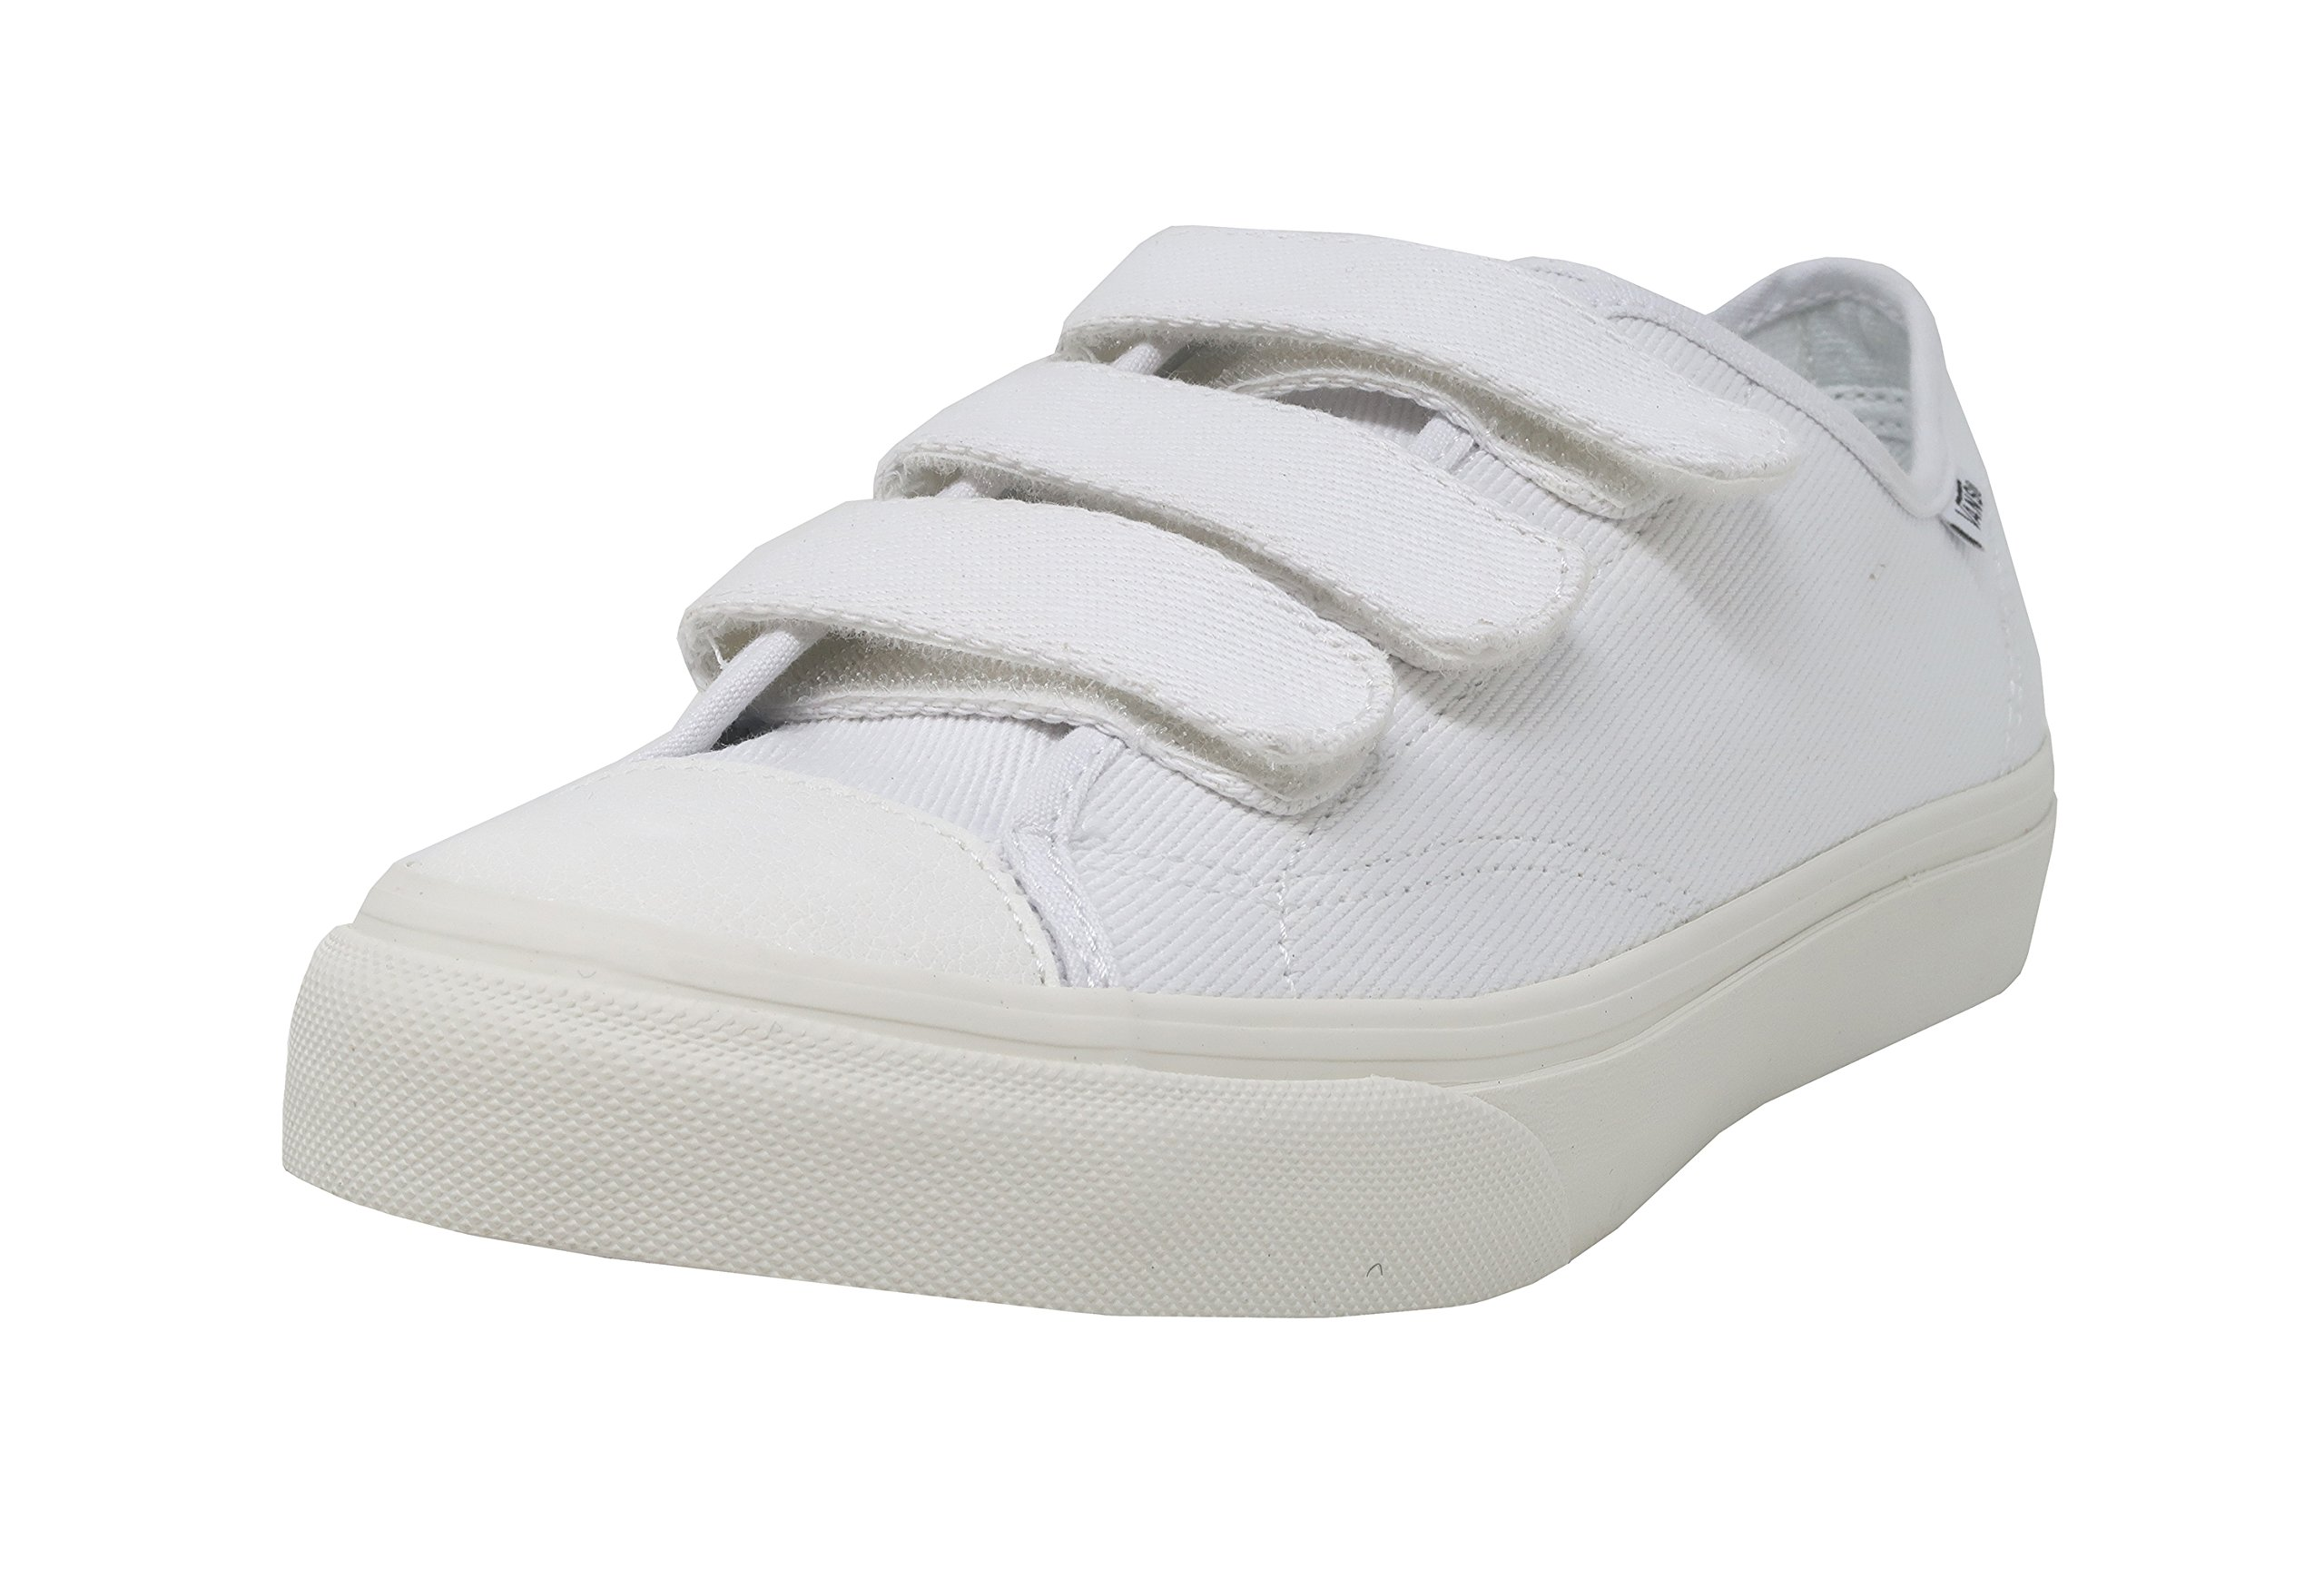 Vans Unisex Shoes Prison Issue True White/ Off White (Twill) Fashion Sneaker (9.5 Mens /11 Womens) by Vans